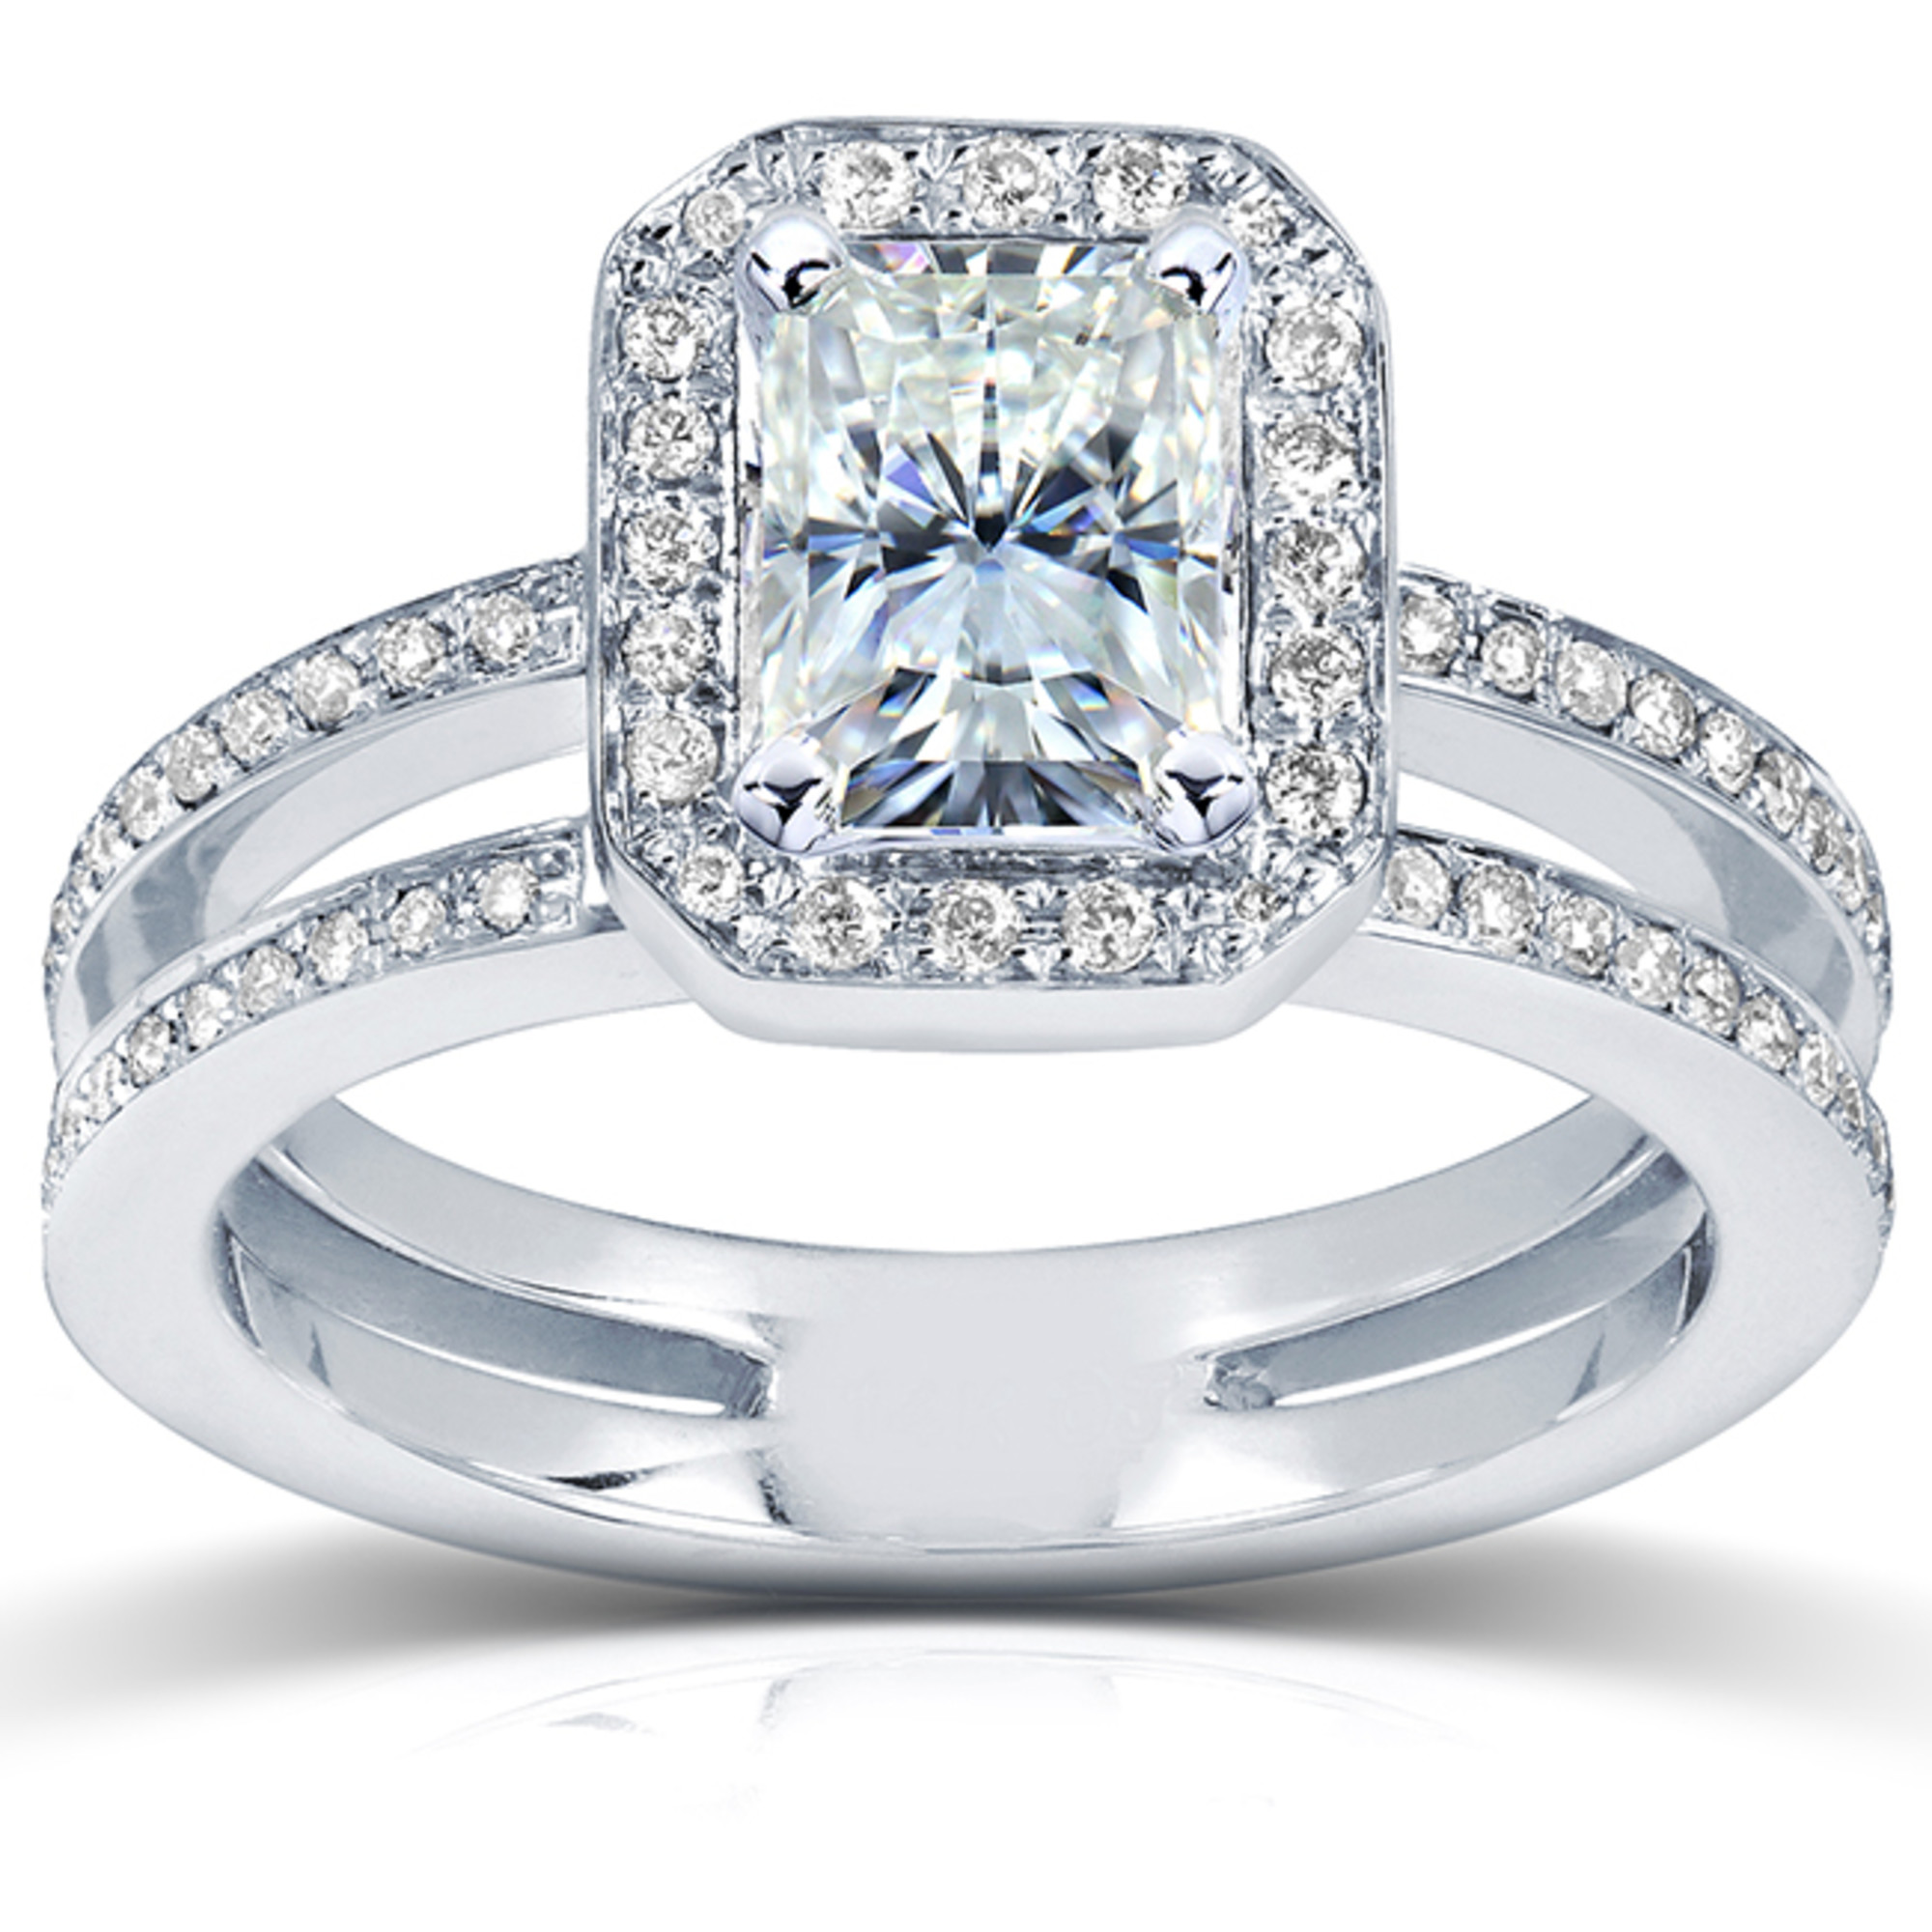 Radiant-cut Moissanite Engagement Ring with Halo Diamond 1 1/2 CTW 14k White Gold